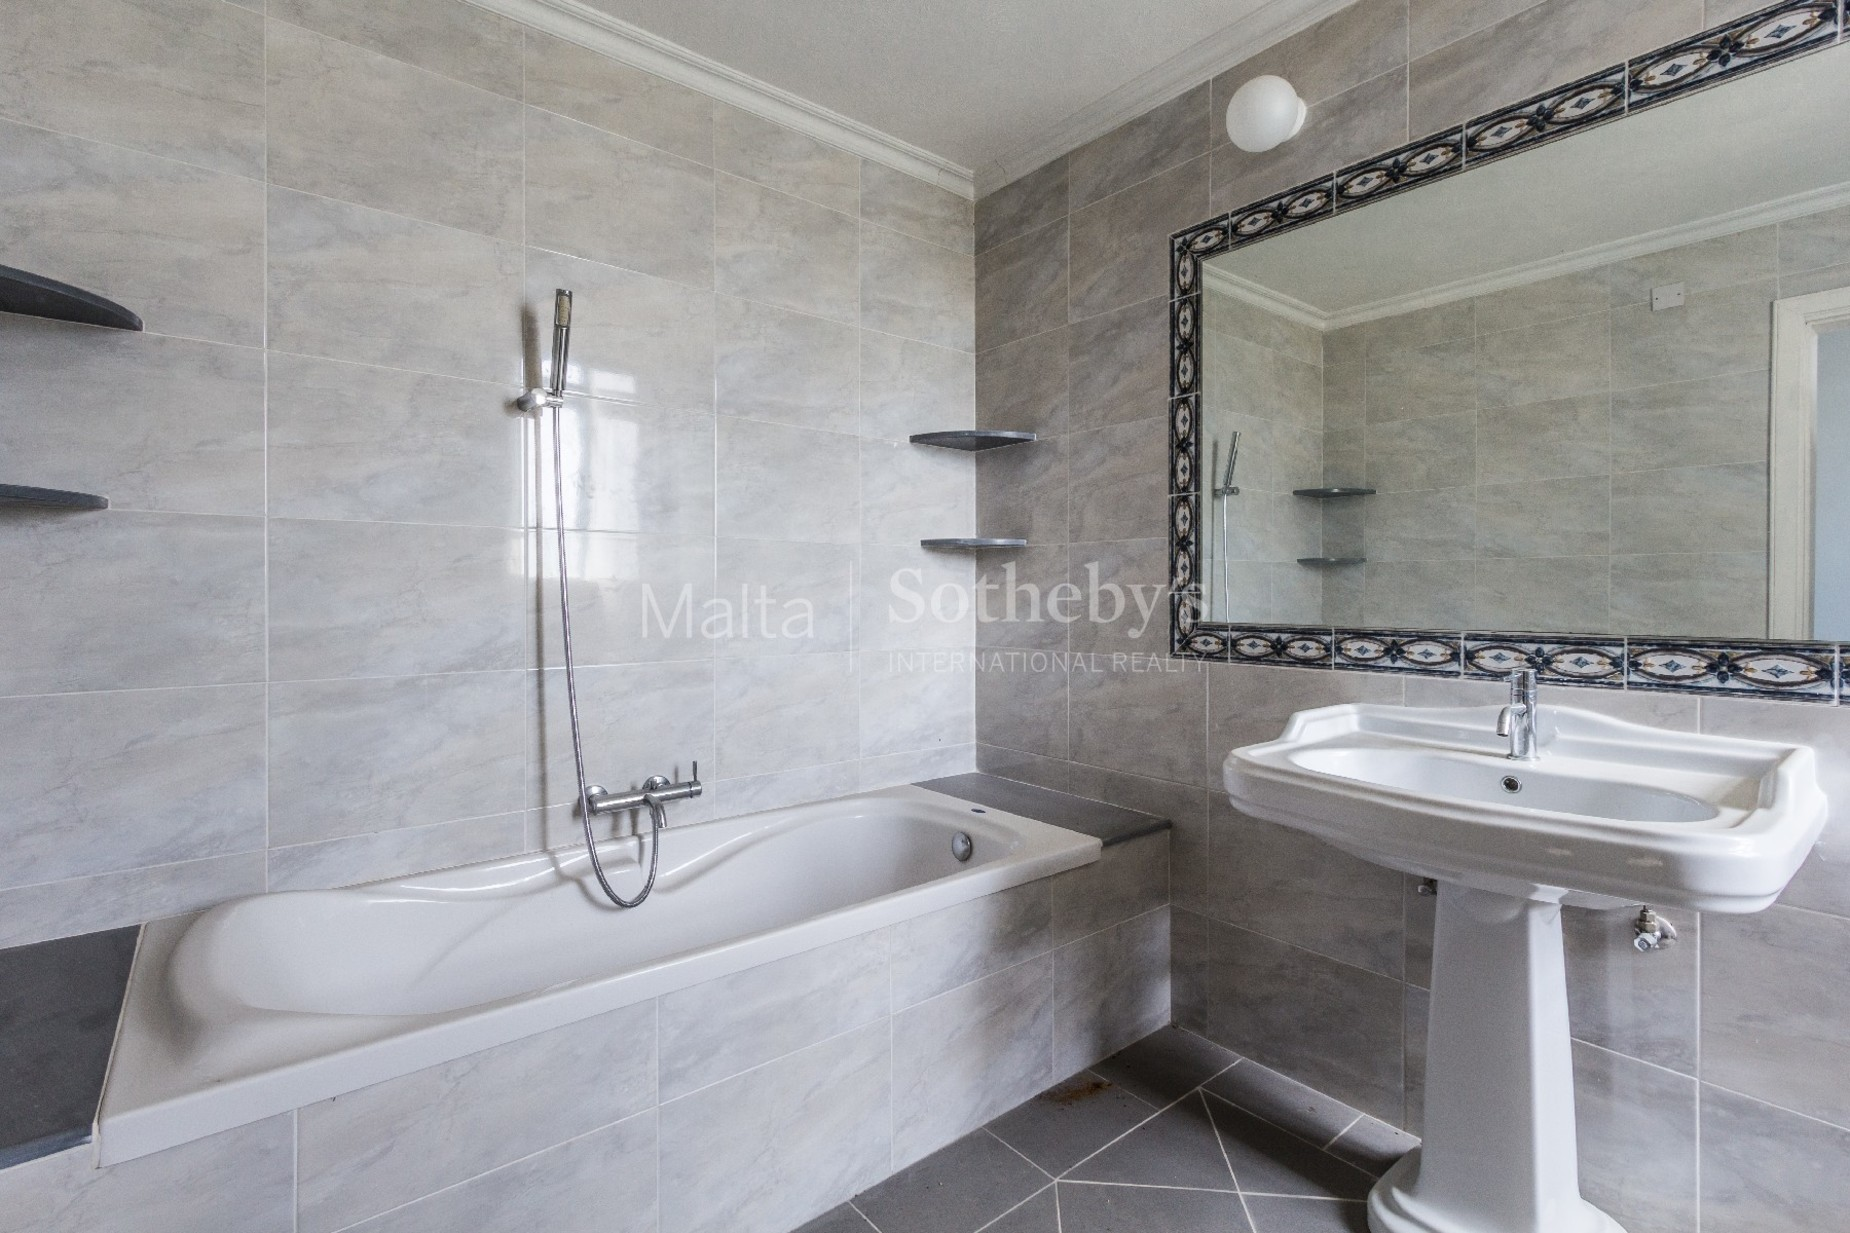 0 bed Palazzo For Rent in Tarxien, Tarxien - thumb 7